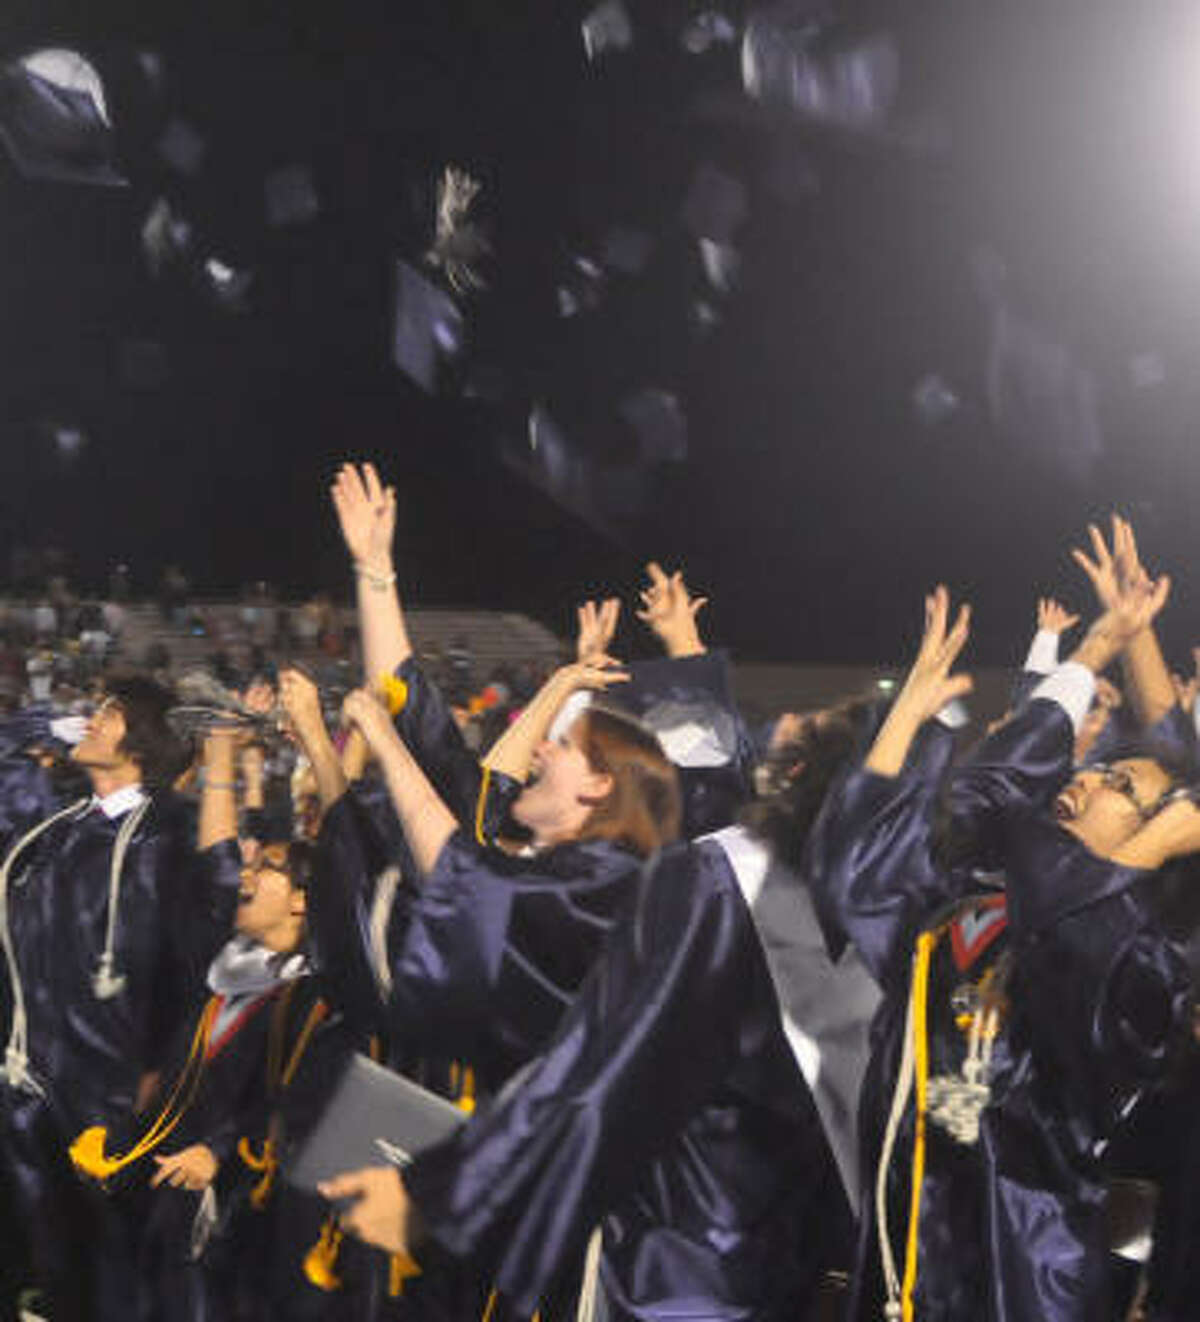 Manvel High School's first graduating class celebrates at the ceremony, which occured at Alvin High School's stadium.